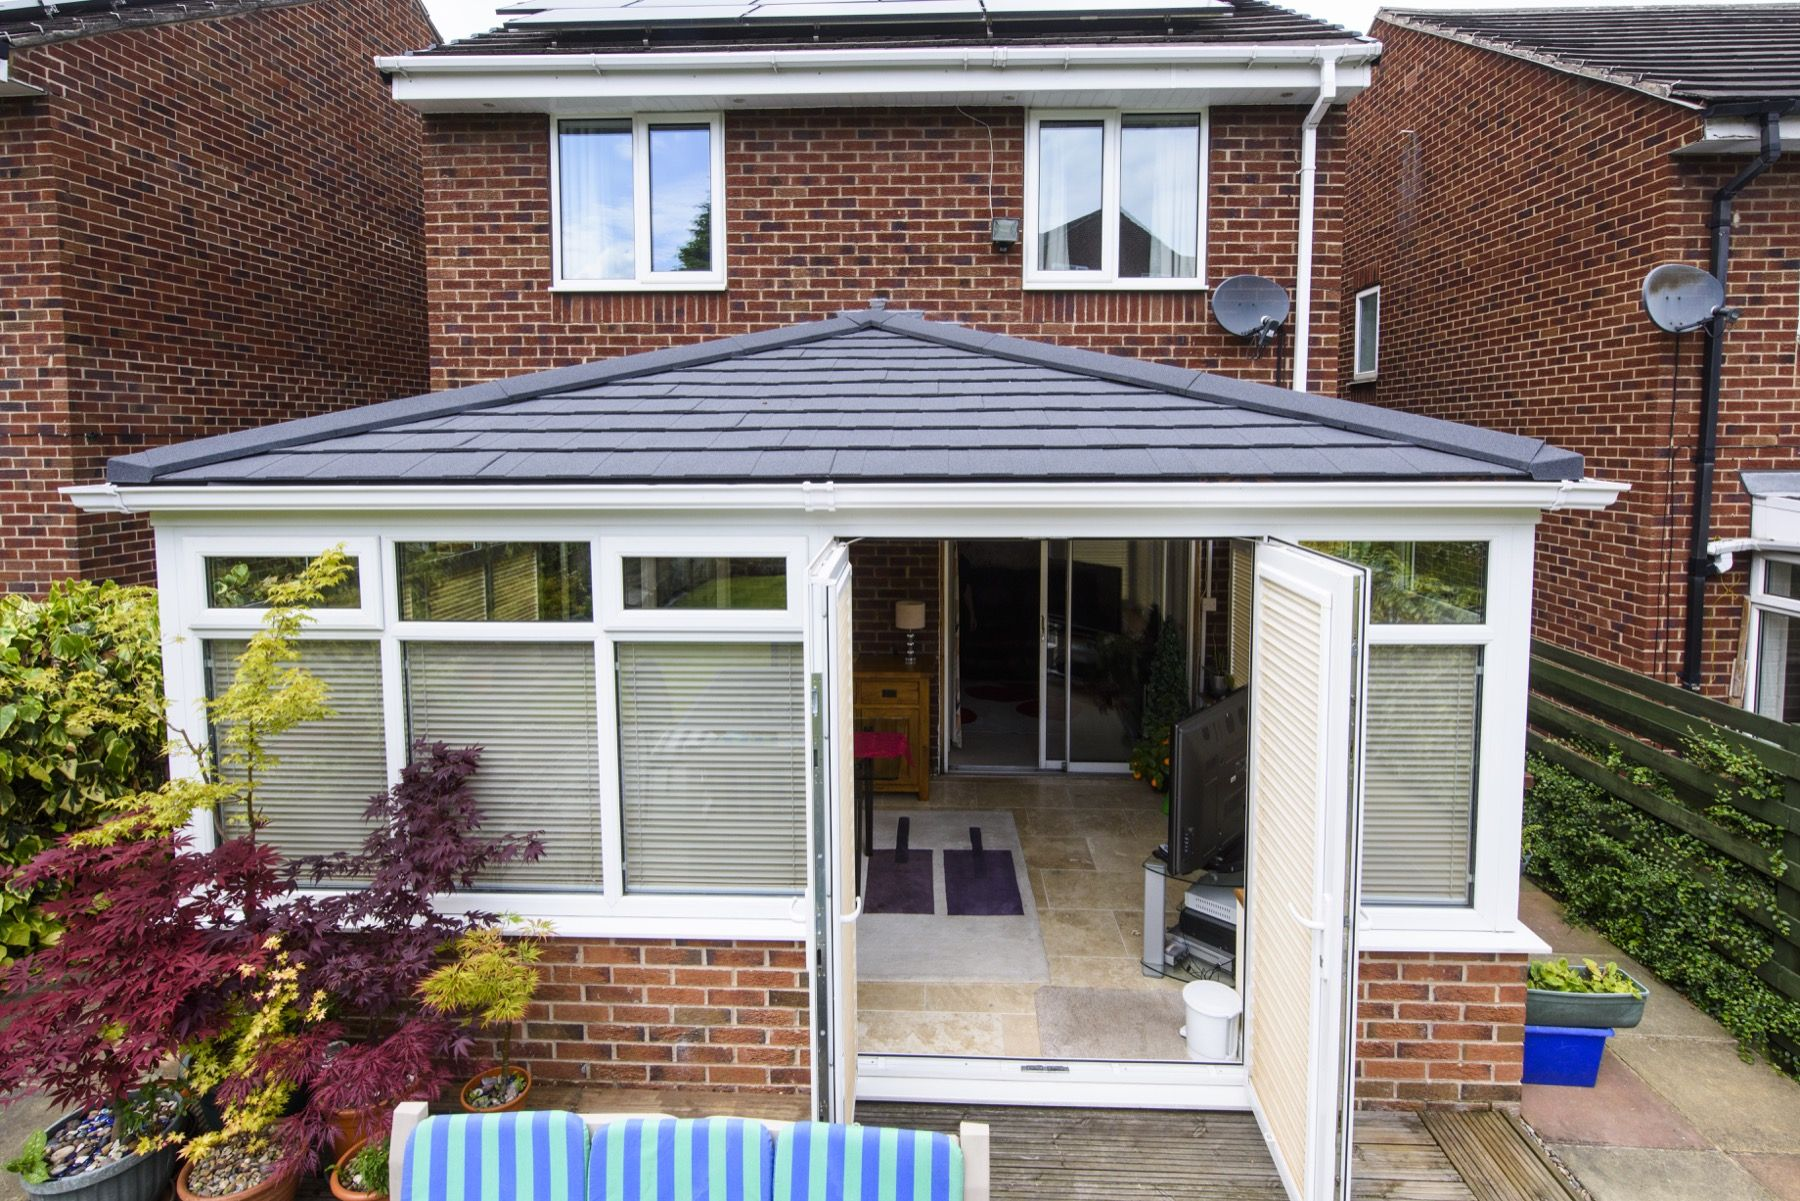 Ultraroofs In Hampshire Buy Now Pay Later Garden Room Roof Styles Roof Garden